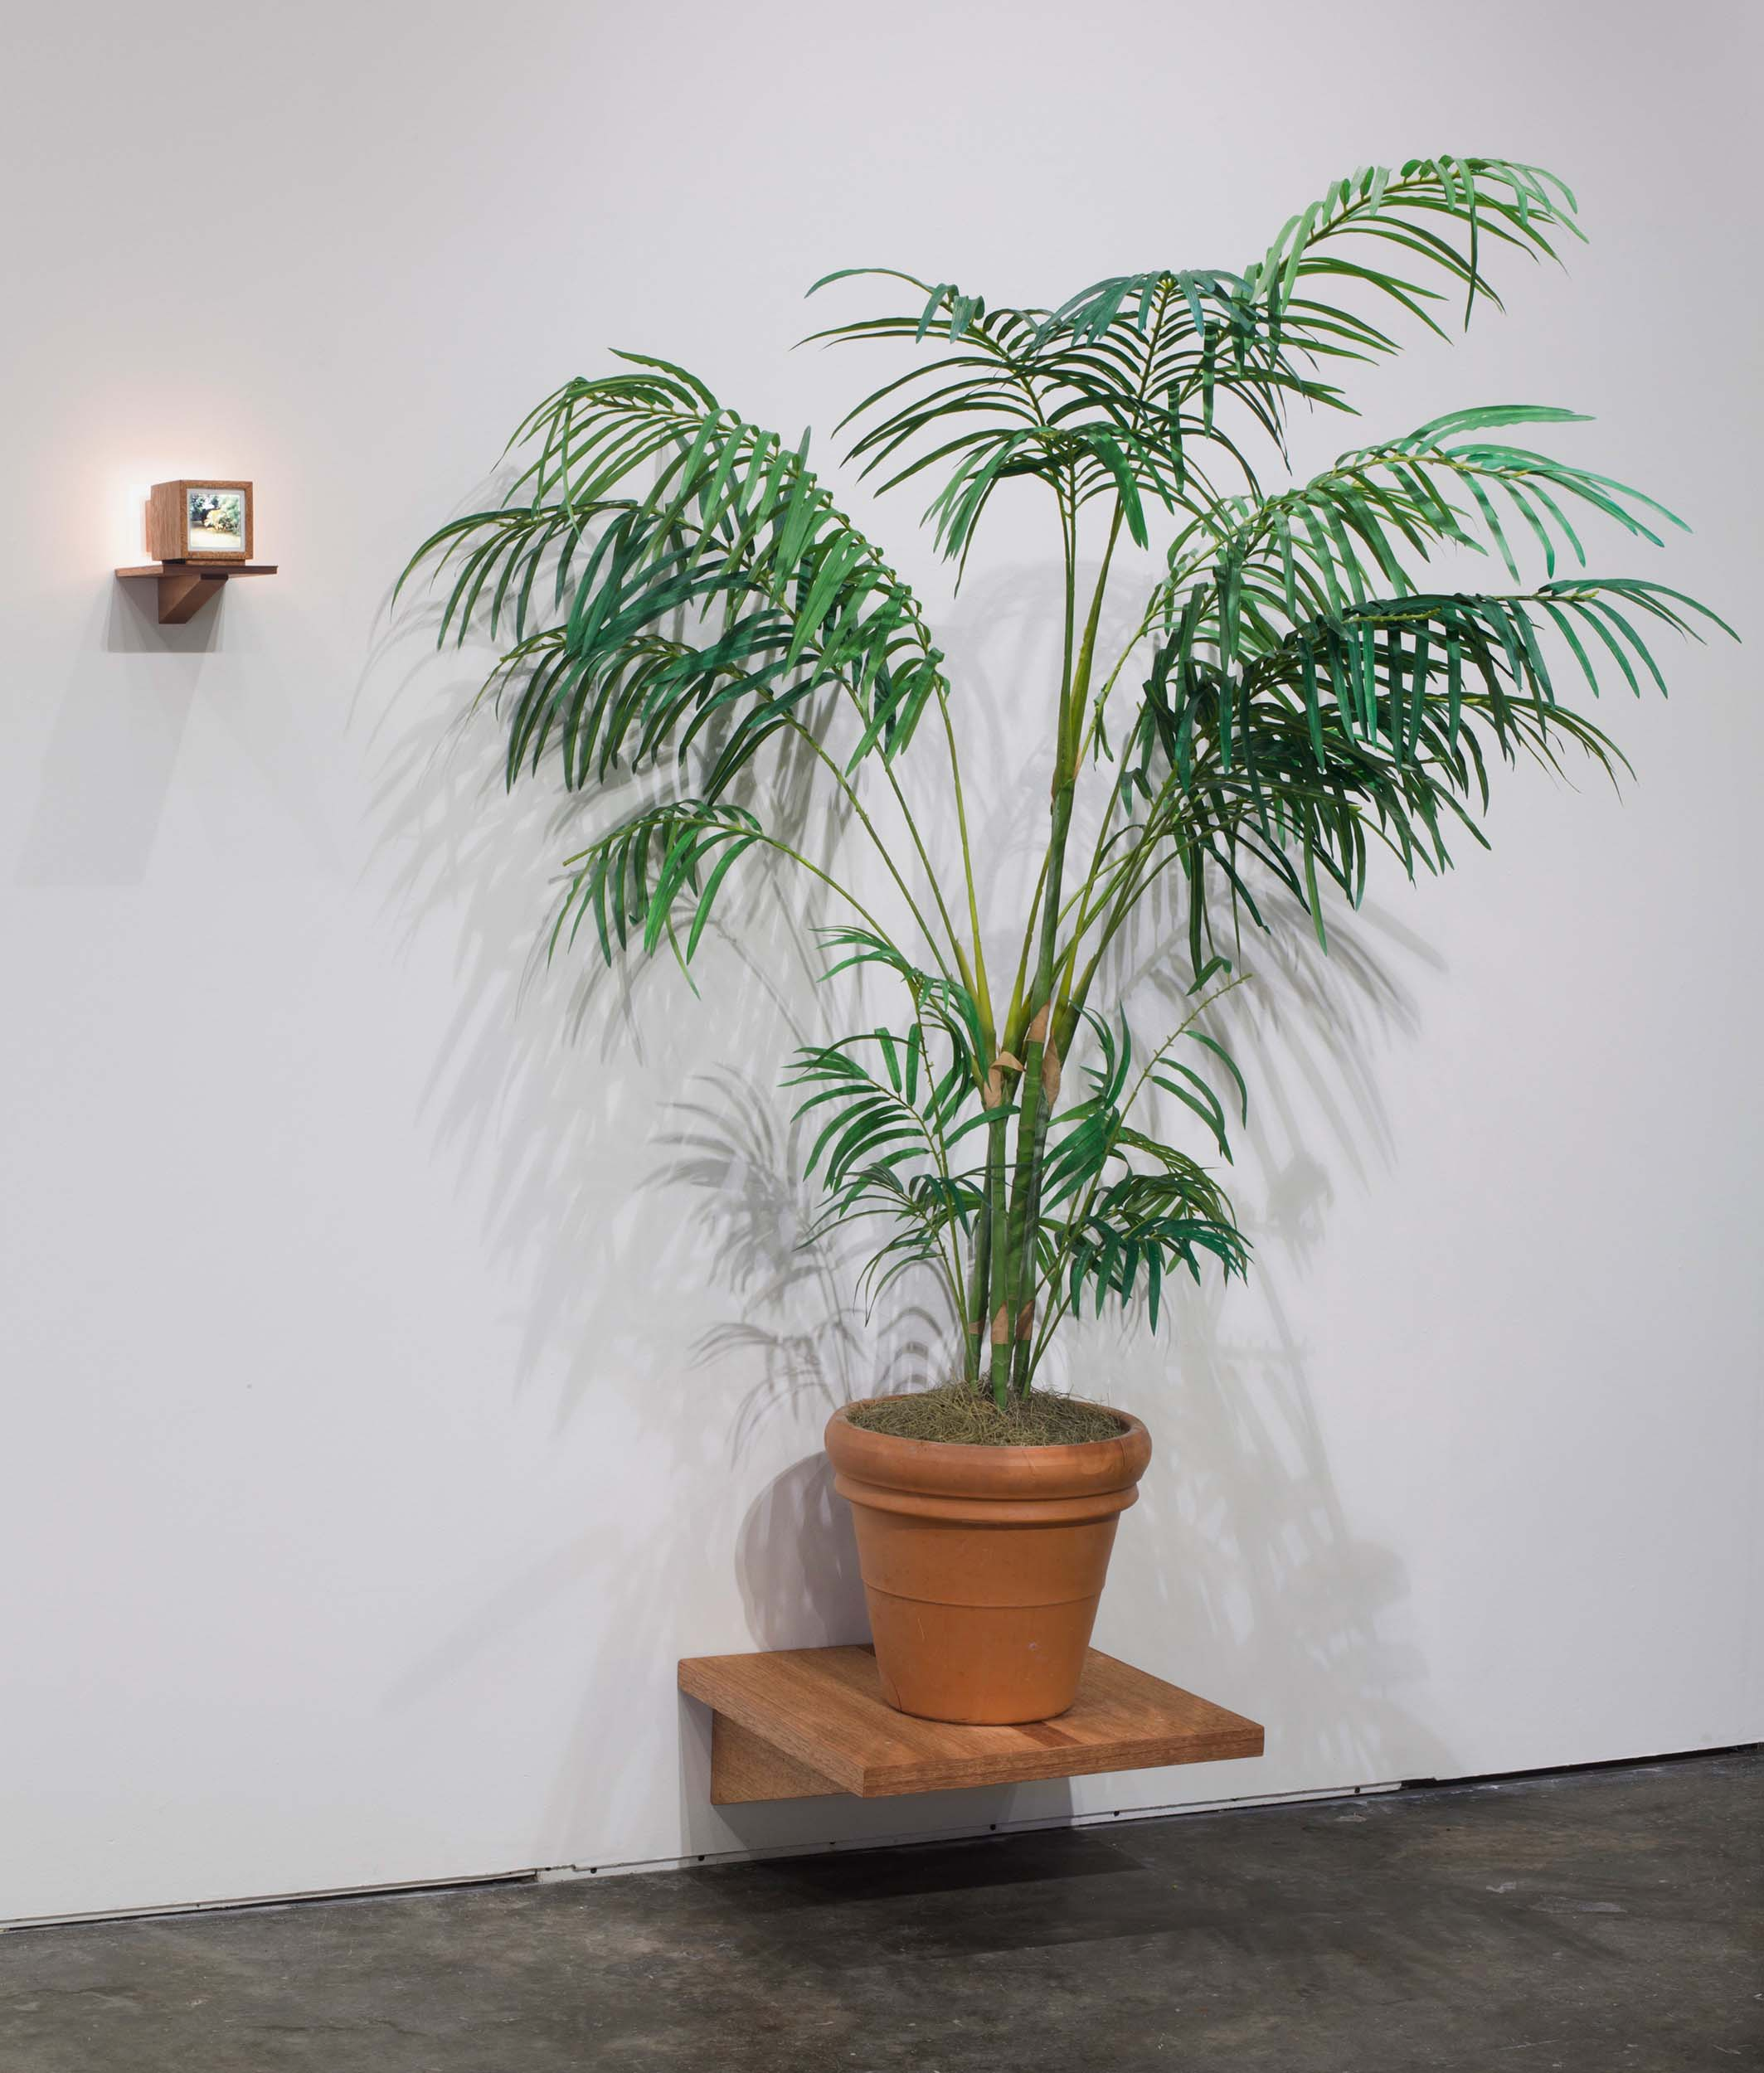 "Mark Baugh-Sasaki, Between Two Palms Medium format slide, Plastic palm tree, wood, glass, LED light, Installation: 72"" x 48"" x 16"", Individual elements: lightbox and shelf – 9"" x 6"" x 7"", Palm tree and shelf – 60"" x 18"" x 18"""